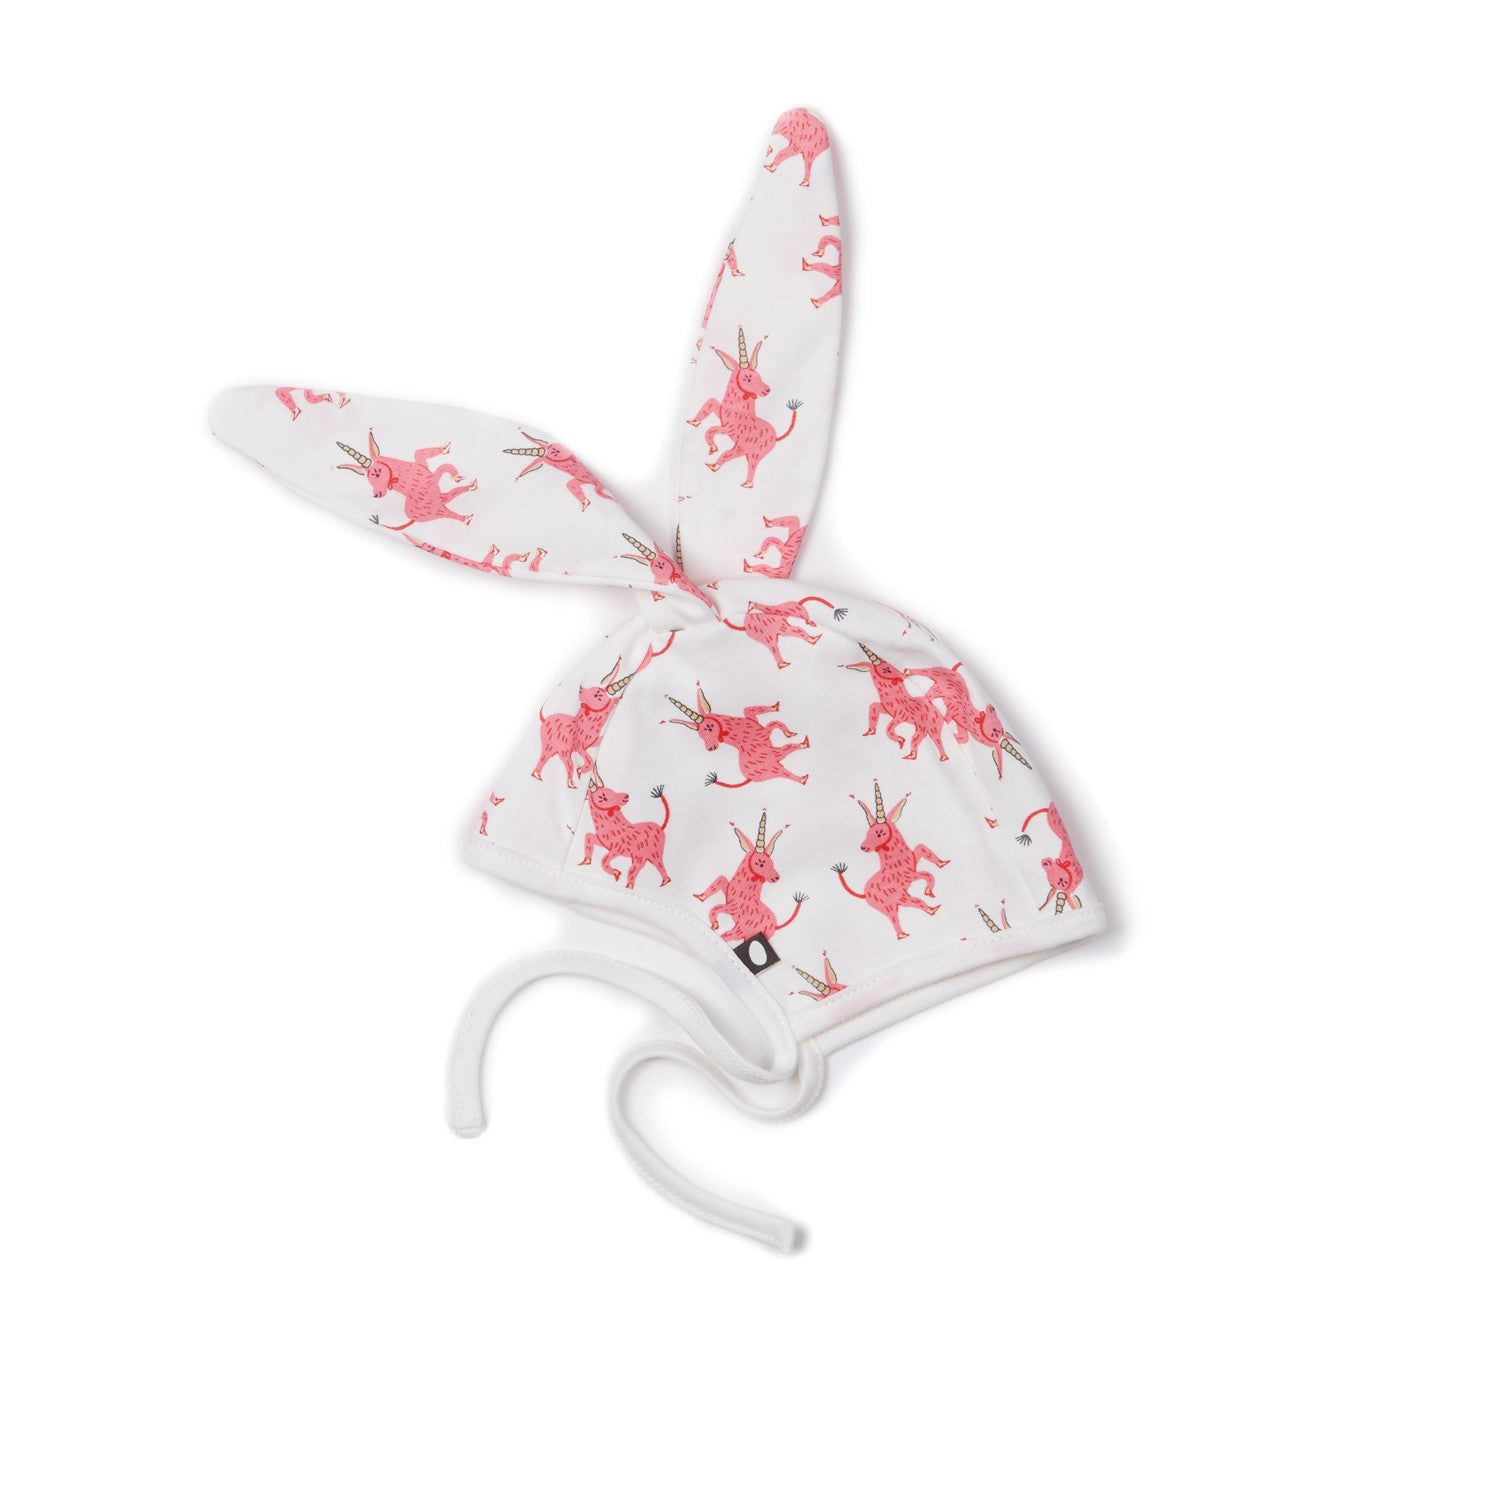 OEUF NYC bunny hat with Unicorns